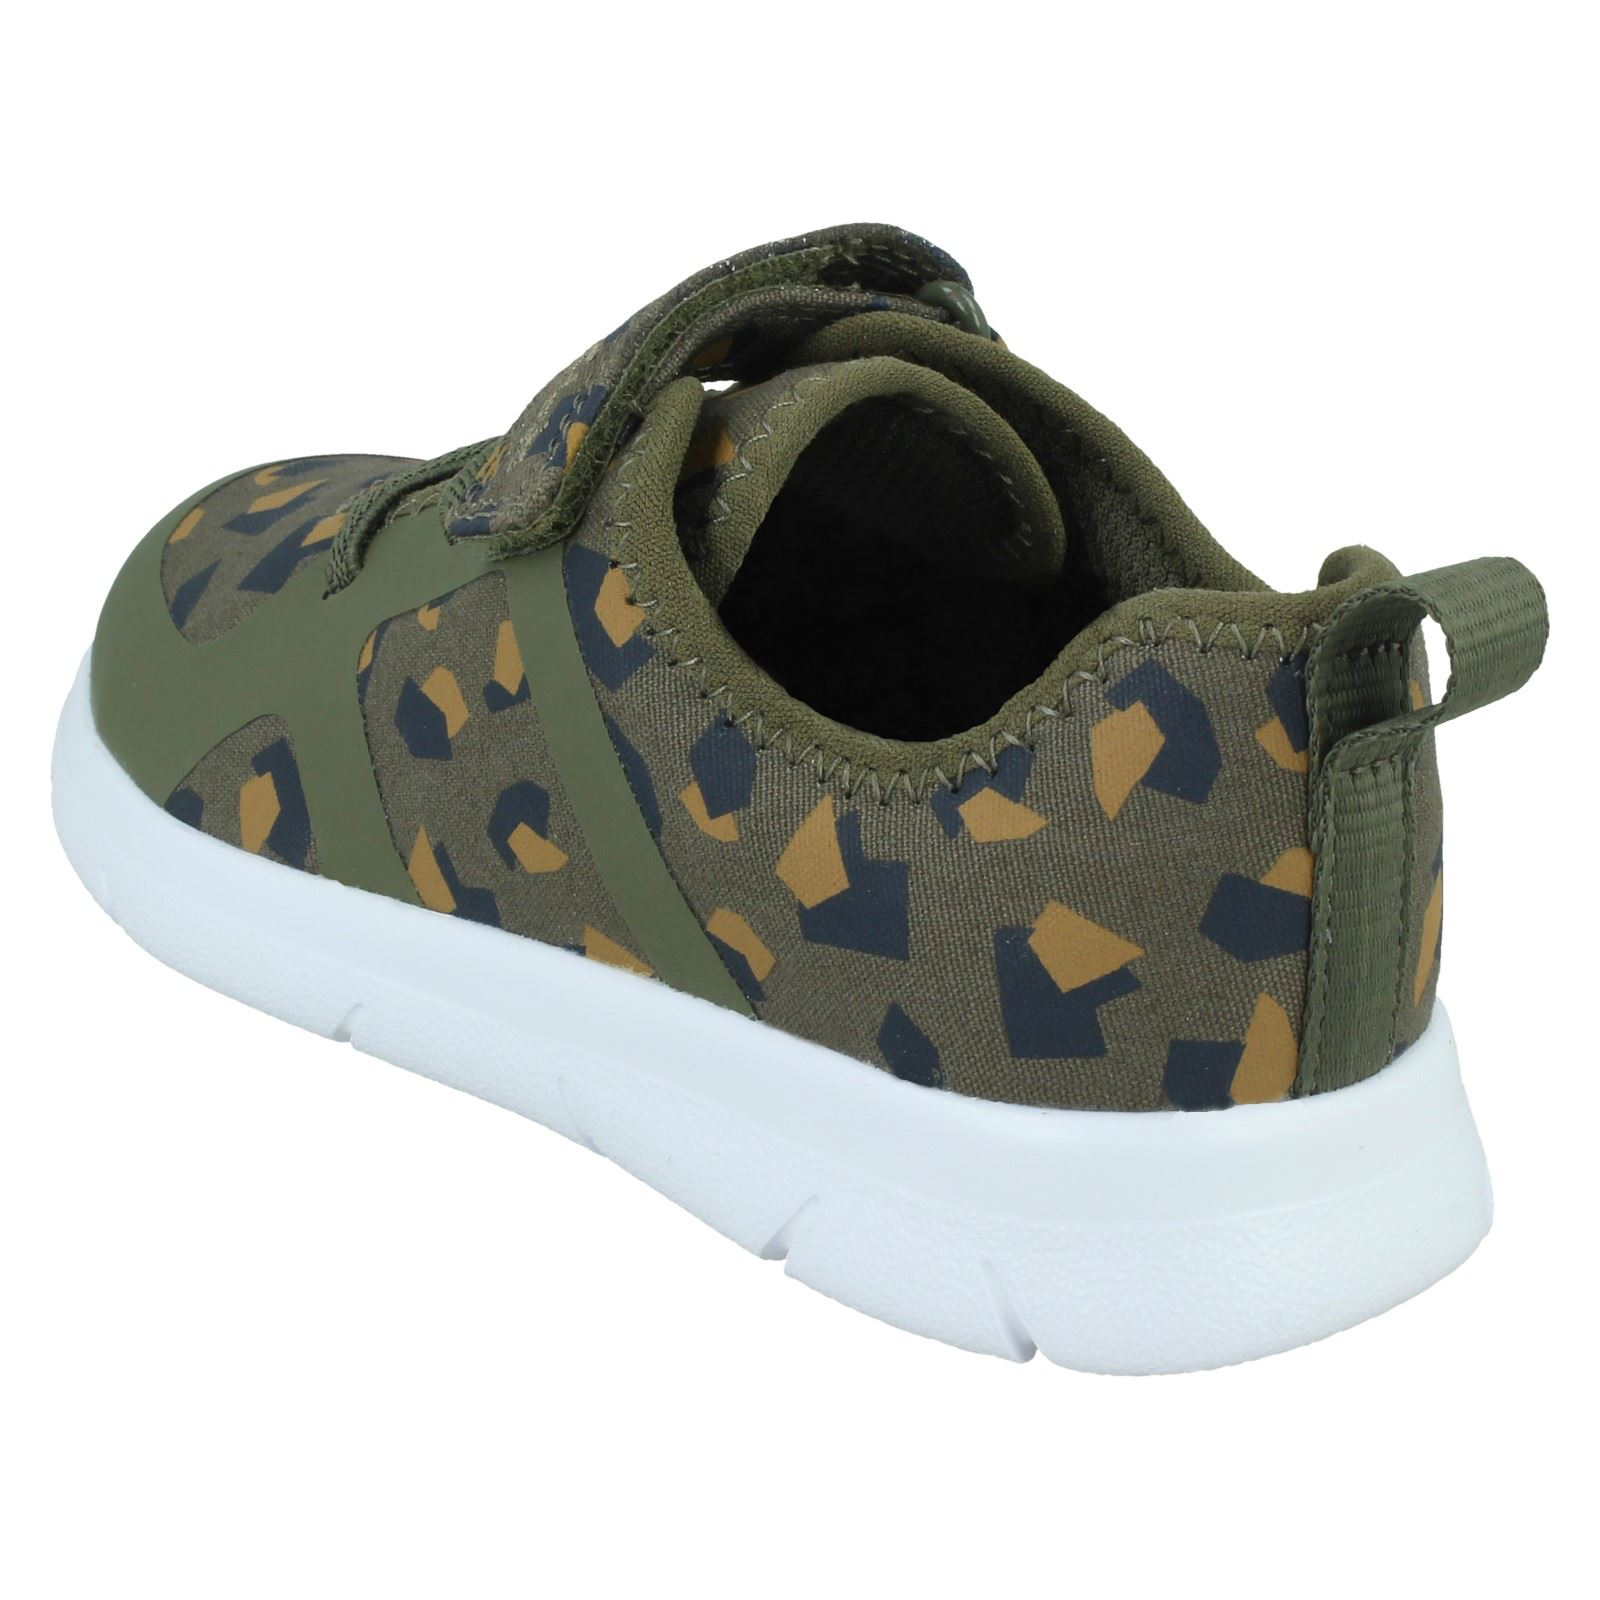 Childrens Unisex Clarks Casual Hook /& Loop Trainers Ath Flux T